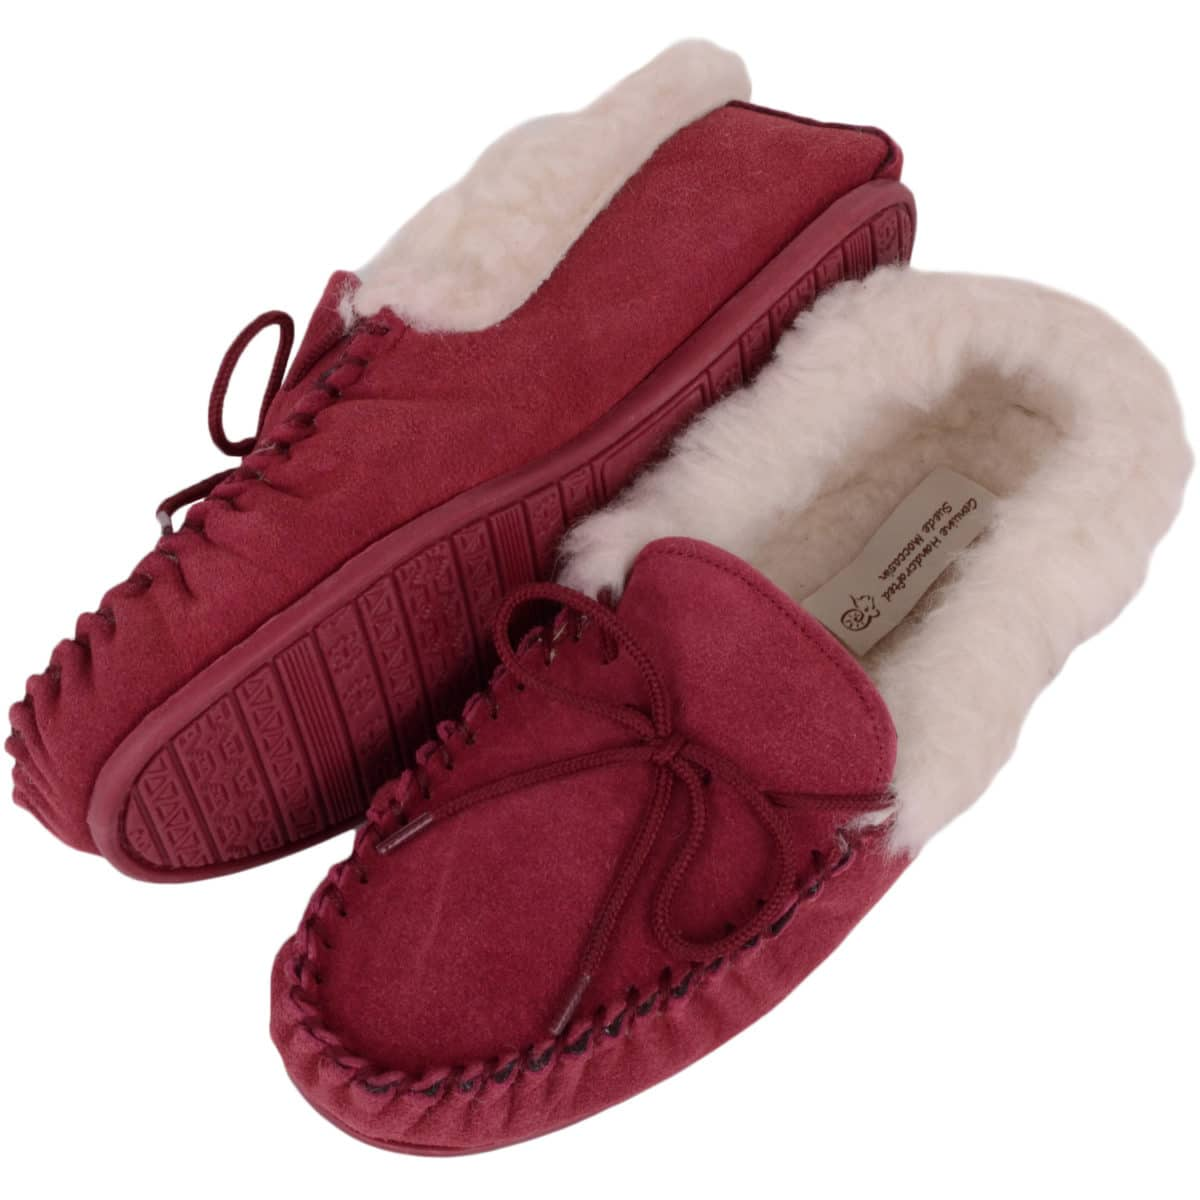 Snugrugs Rubber Sole Wool Cuff Moccasin - Crimson